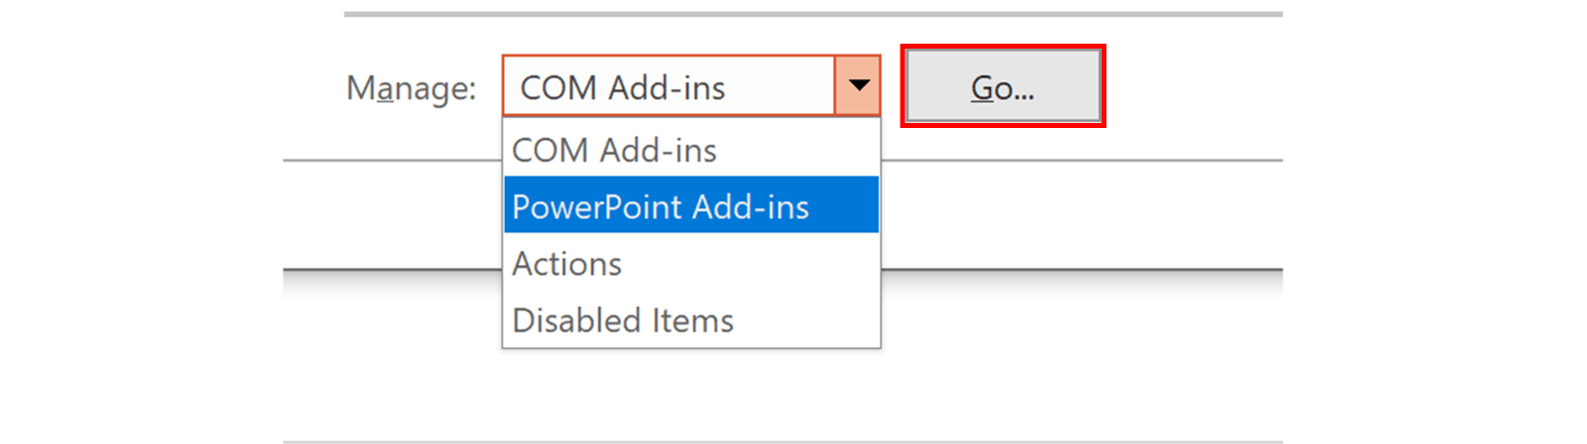 Screenshot of managing PowerPoint add-ins